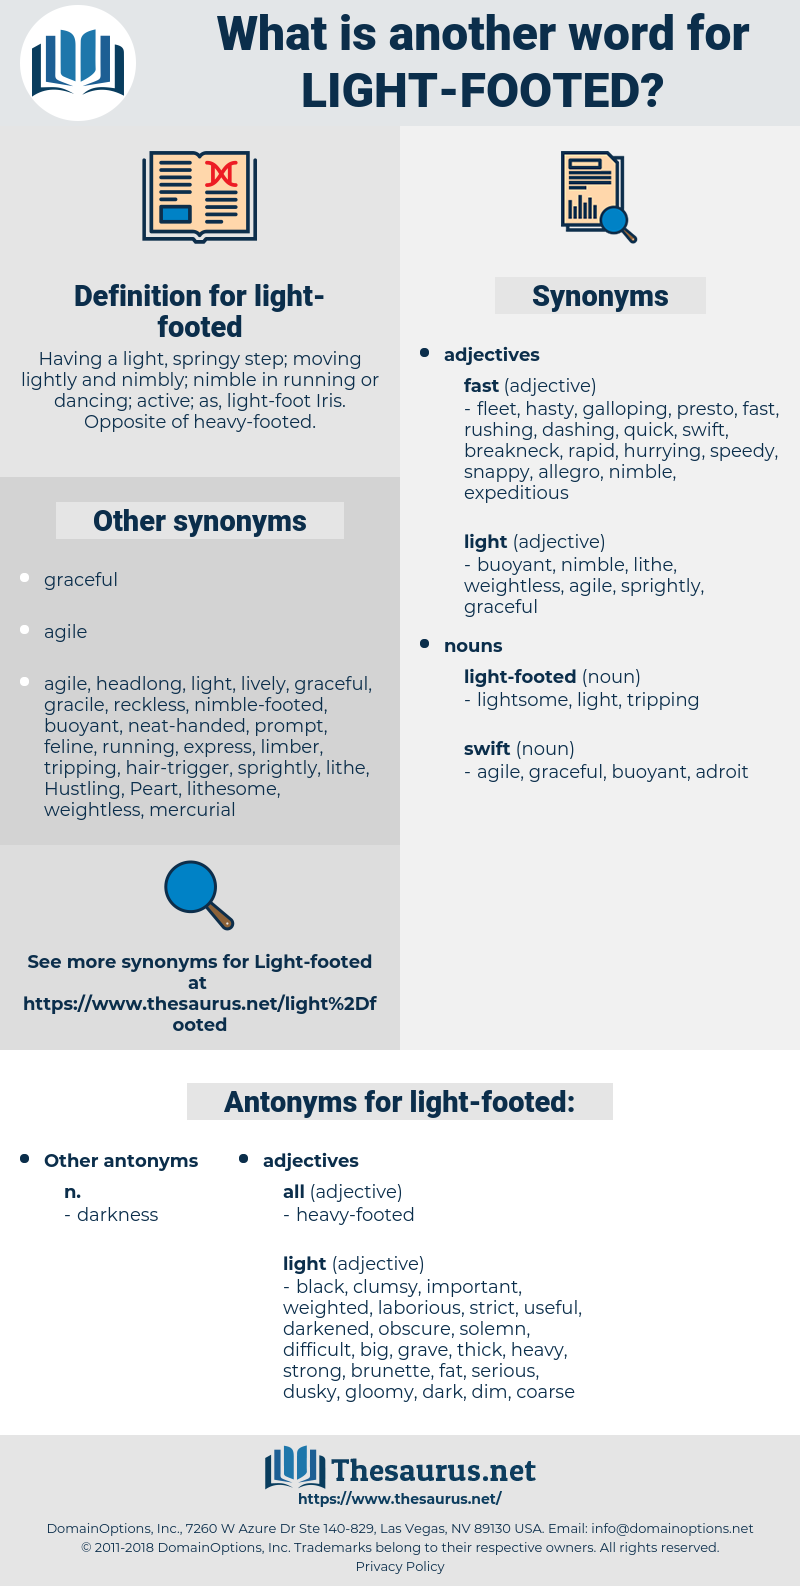 light-footed, synonym light-footed, another word for light-footed, words like light-footed, thesaurus light-footed